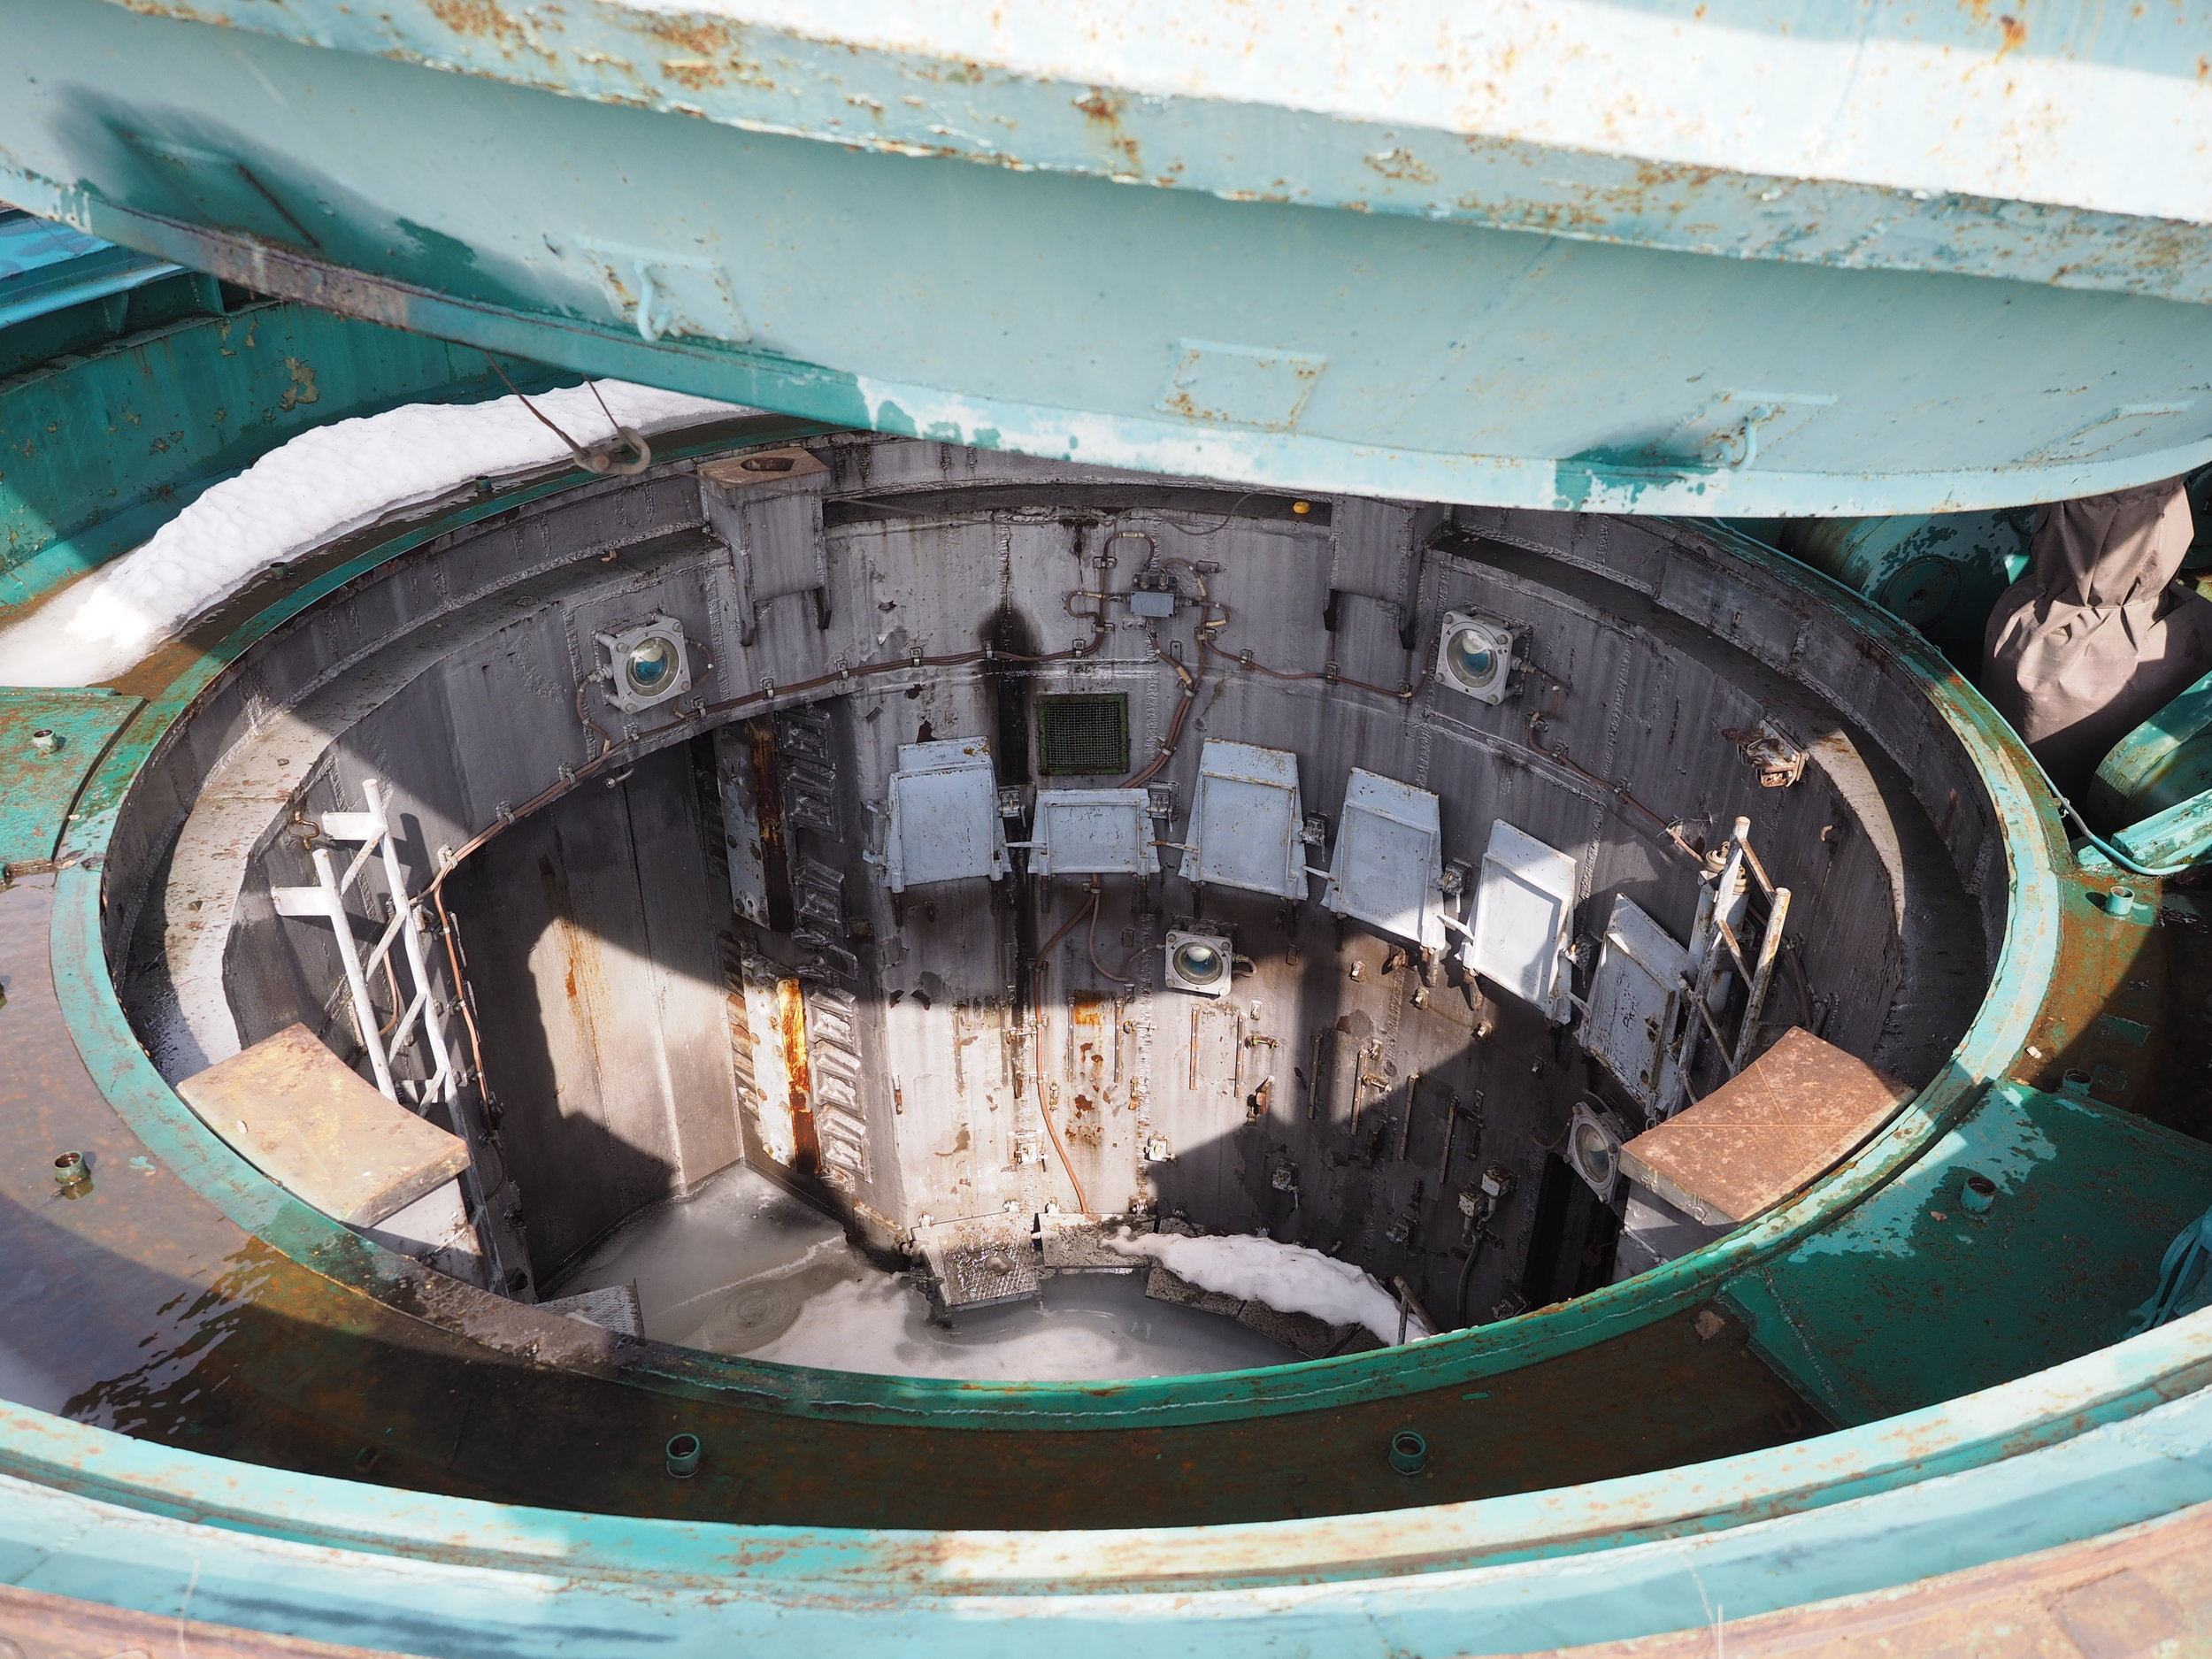 The silo has been filled with concrete to stop them sneaking a missile back in.